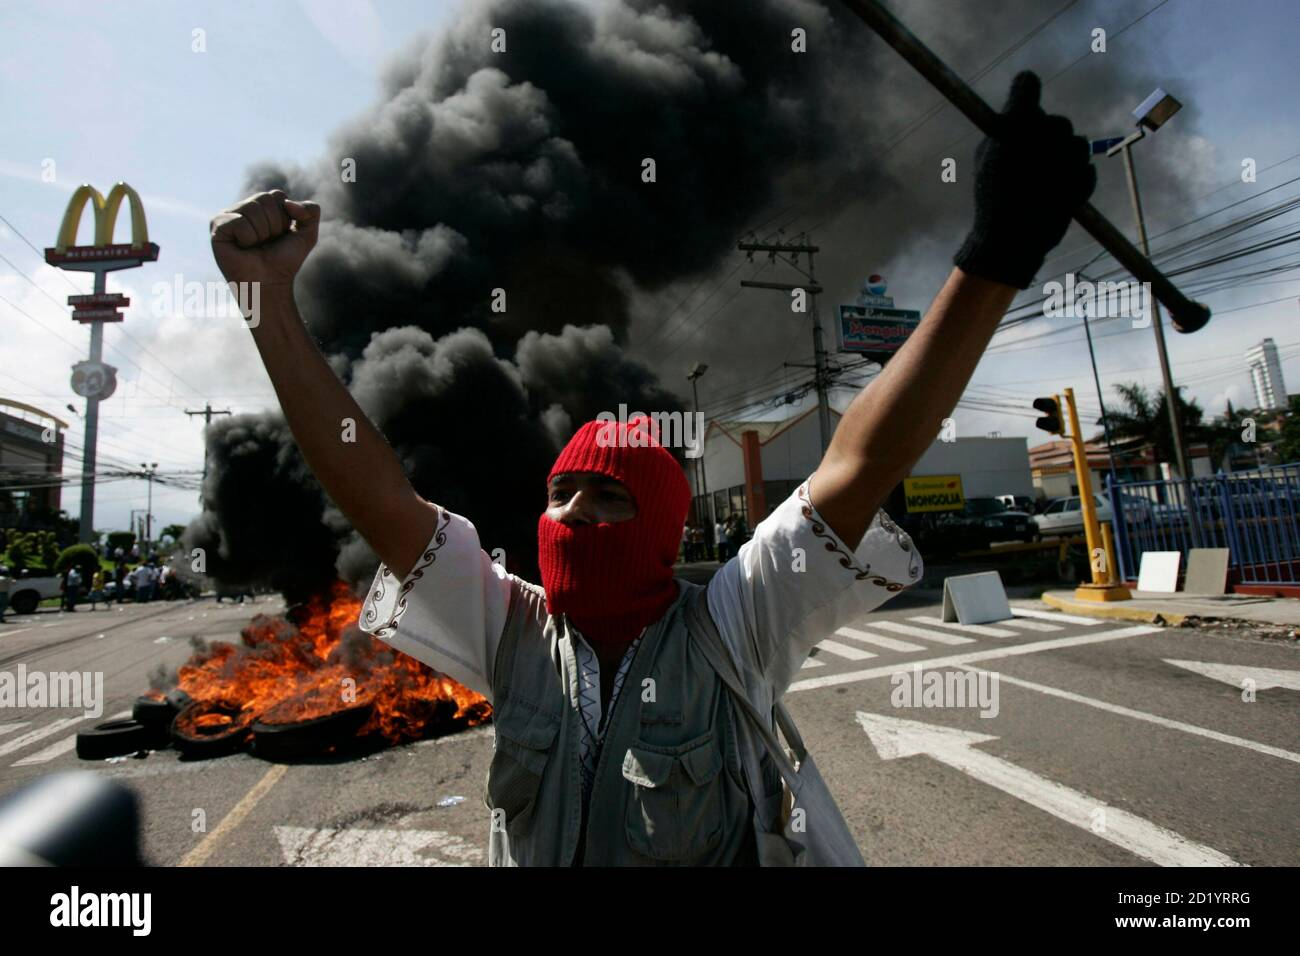 A supporter of Honduras' President Manuel Zelaya demonstrates in front of burning tires outside the presidential residency in Tegucigalpa June 28, 2009. Witnesses said Zelaya was detained at home by troops in a constitutional crisis over his attempt to win re-election. CNN's Spanish-language channel later quoted Costa Rican officials as saying he was in Costa Rica and seeking political asylum. REUTERS/Edgard Garrido (HONDURAS CONFLICT POLITICS IMAGES OF THE DAY) Stock Photo